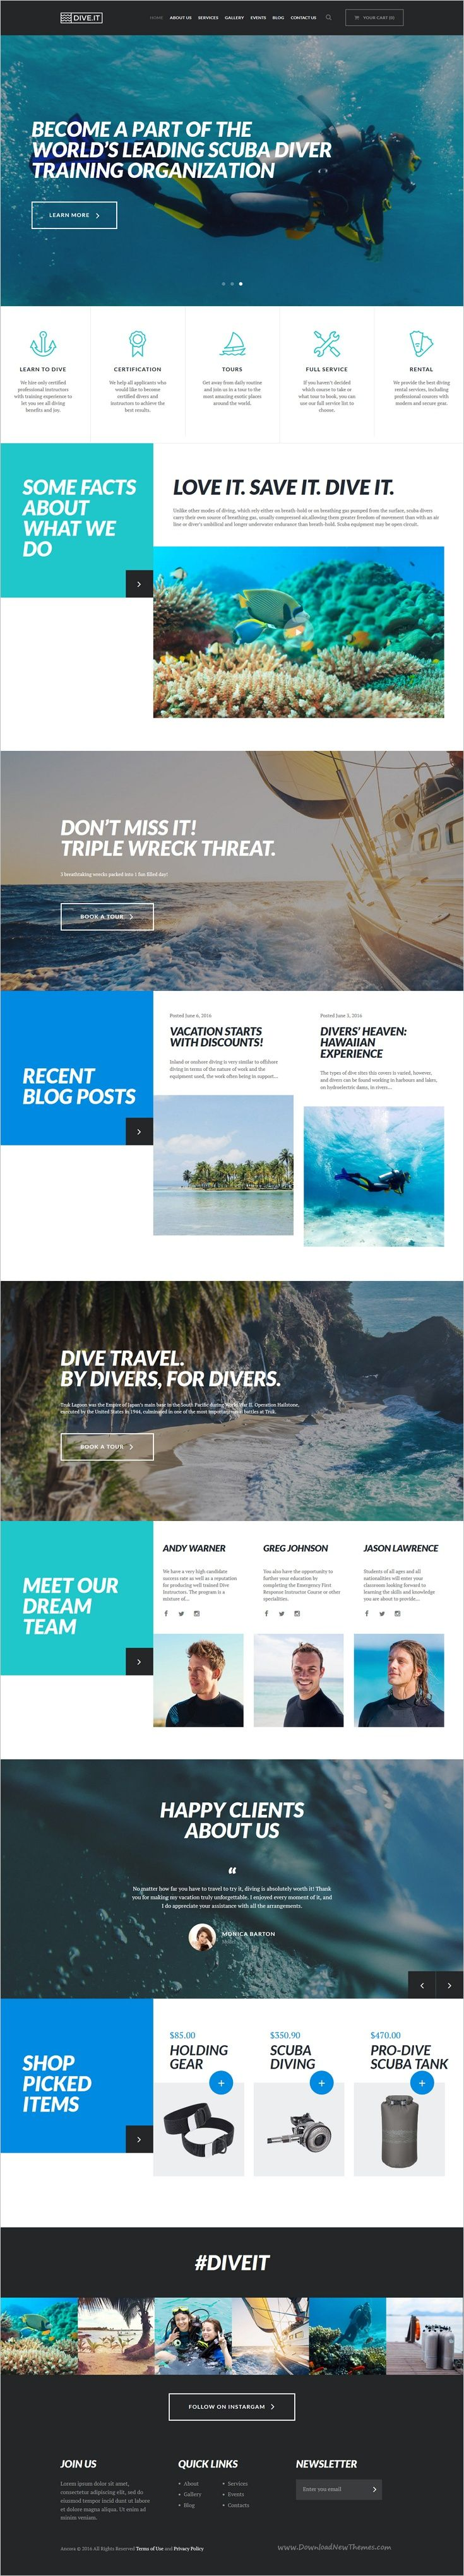 DiveIt is a modern and functional design responsive #WordPress theme for #Scuba #Diving School website download now➩ https://themeforest.net/item/diveit-scuba-diving-school-wordpress-theme/16978449?ref=Datasata